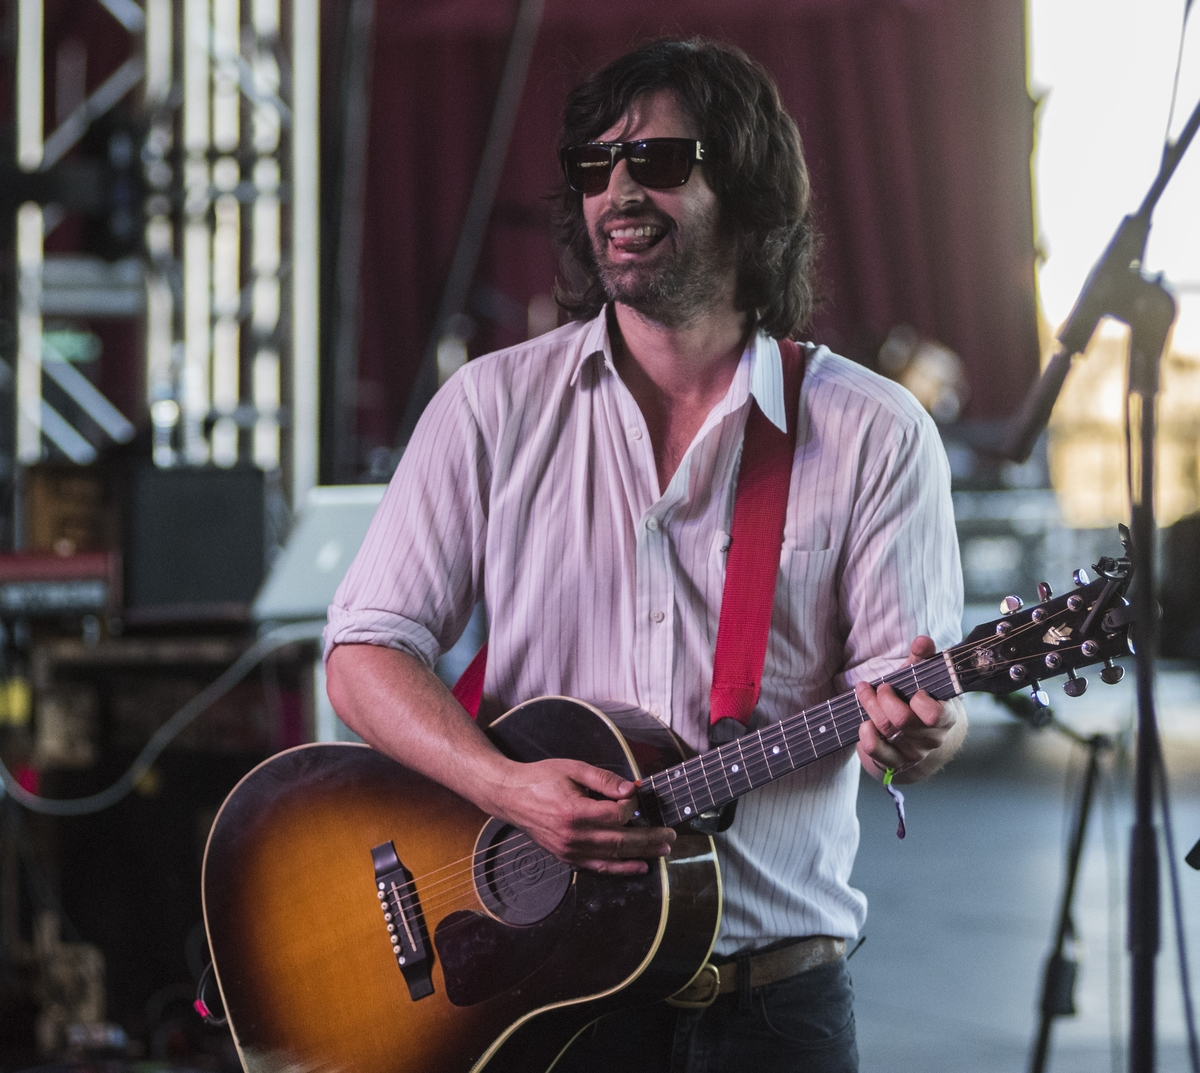 Pete Yorn at Coachella 2016 photos